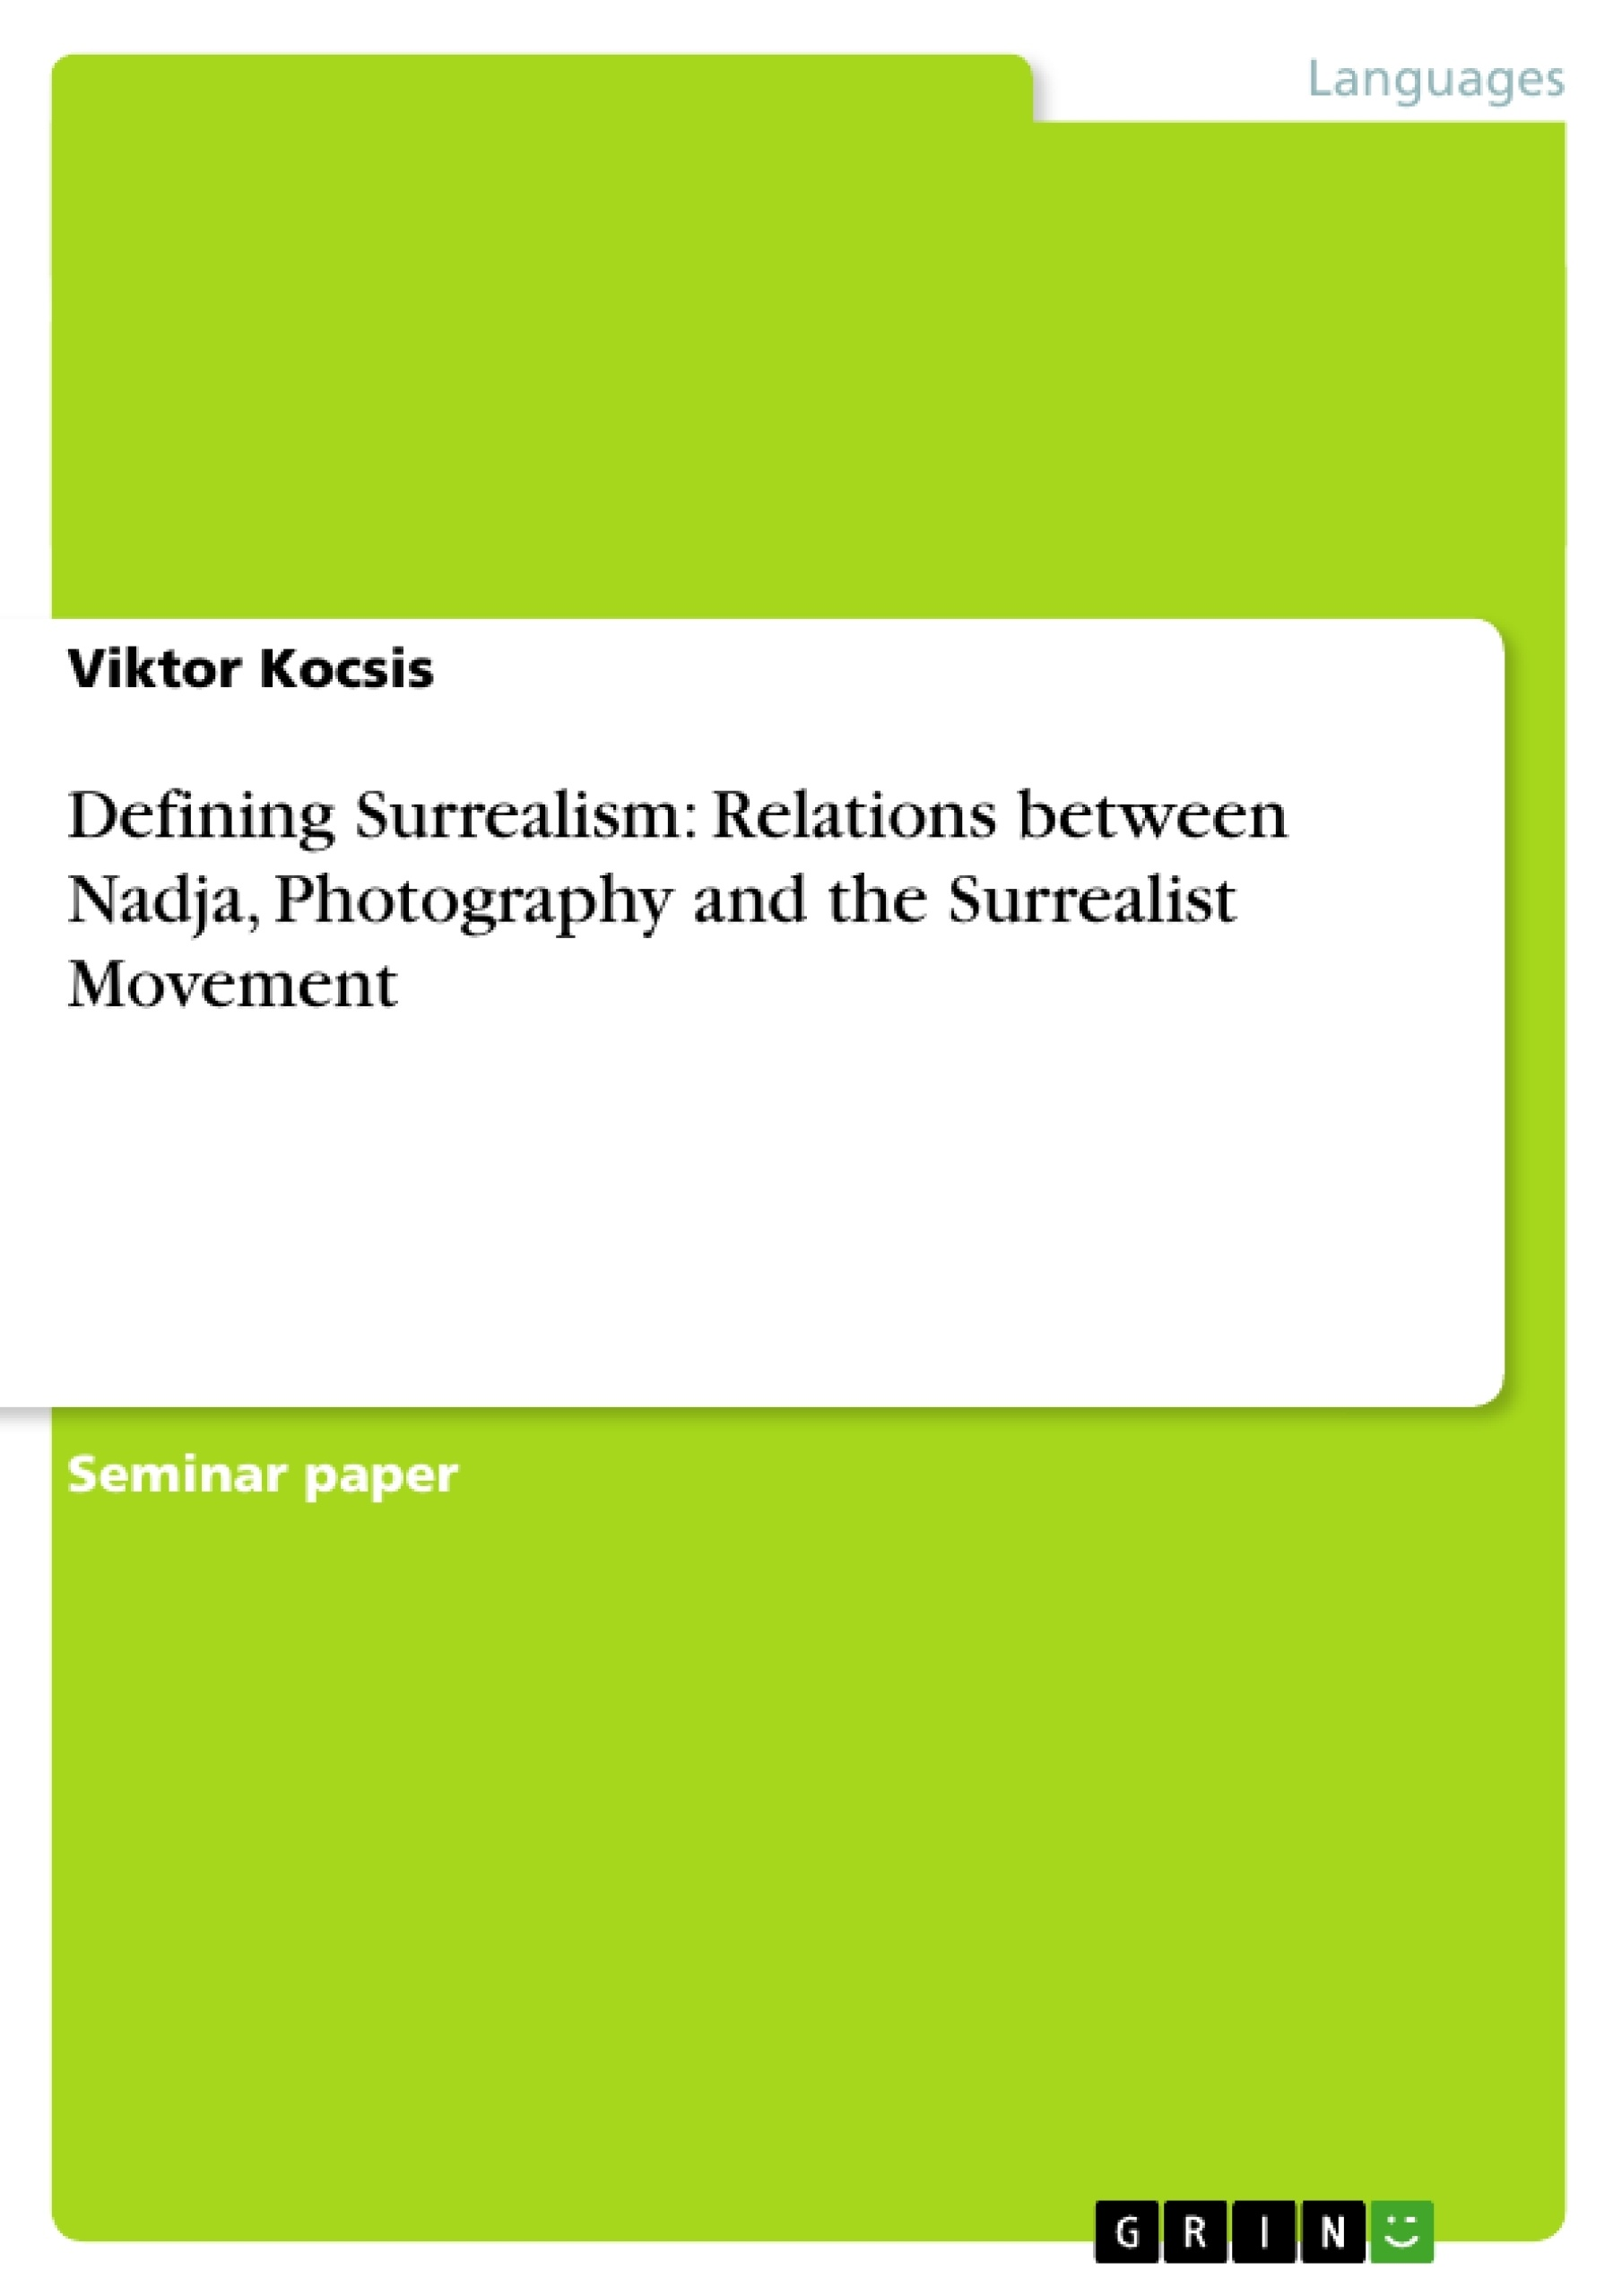 Title: Defining Surrealism: Relations between Nadja, Photography and the Surrealist Movement